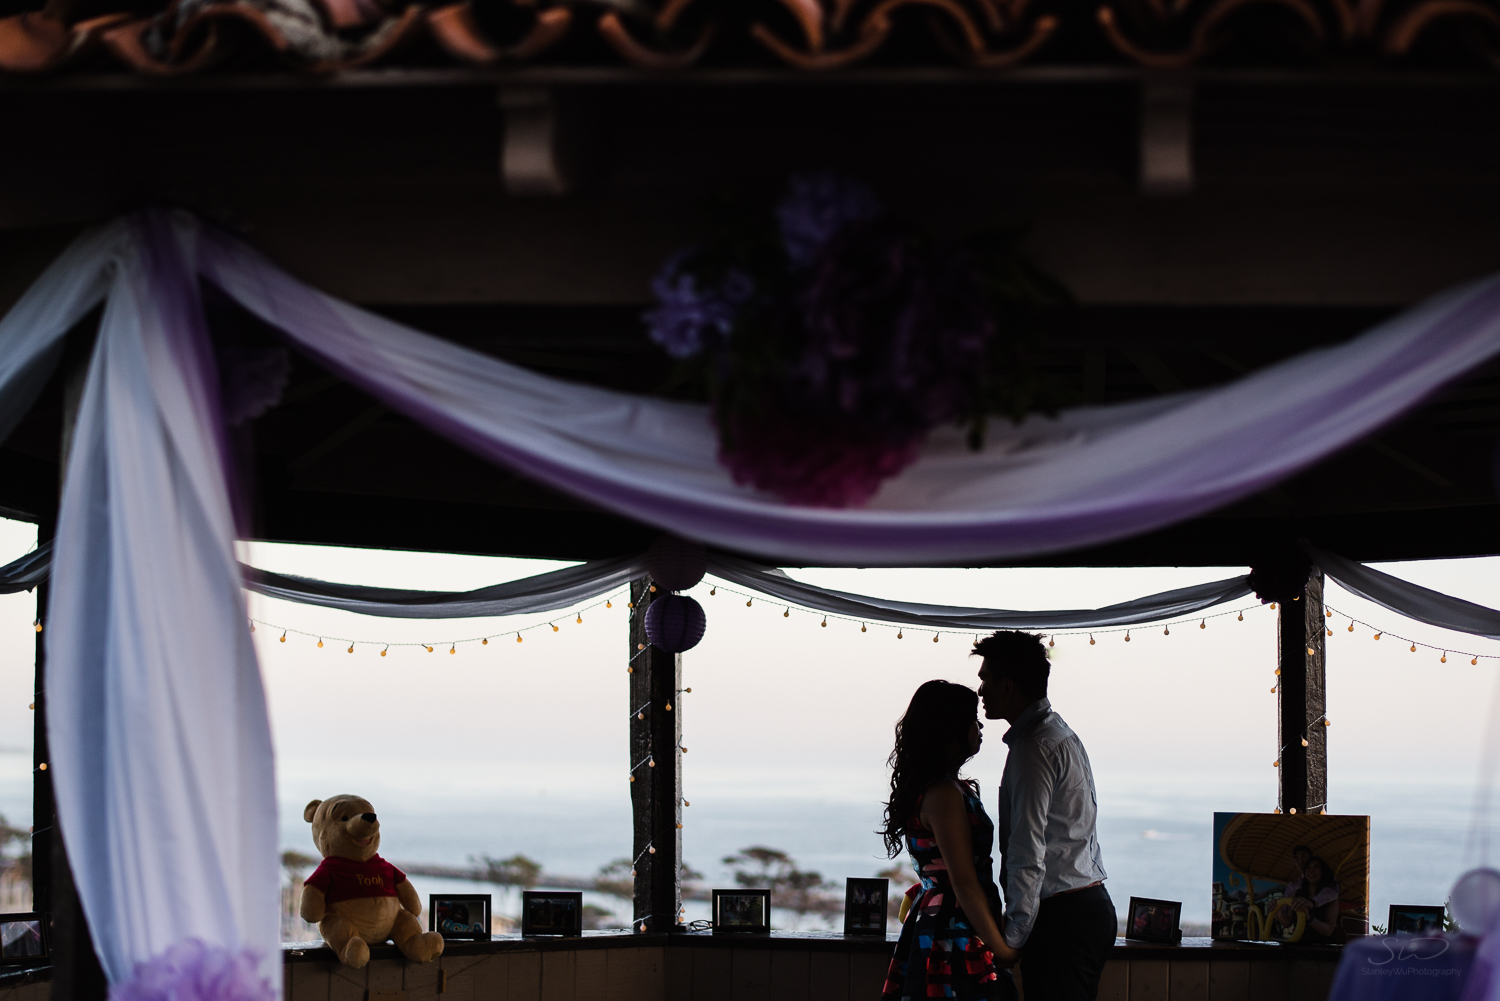 Epic silhouette in gazebo. Cliffside proposal & engagement in Dana Point | Stanley Wu Photography Portrait & Wedding Photographer | Los Angeles, Orange County, Southern California